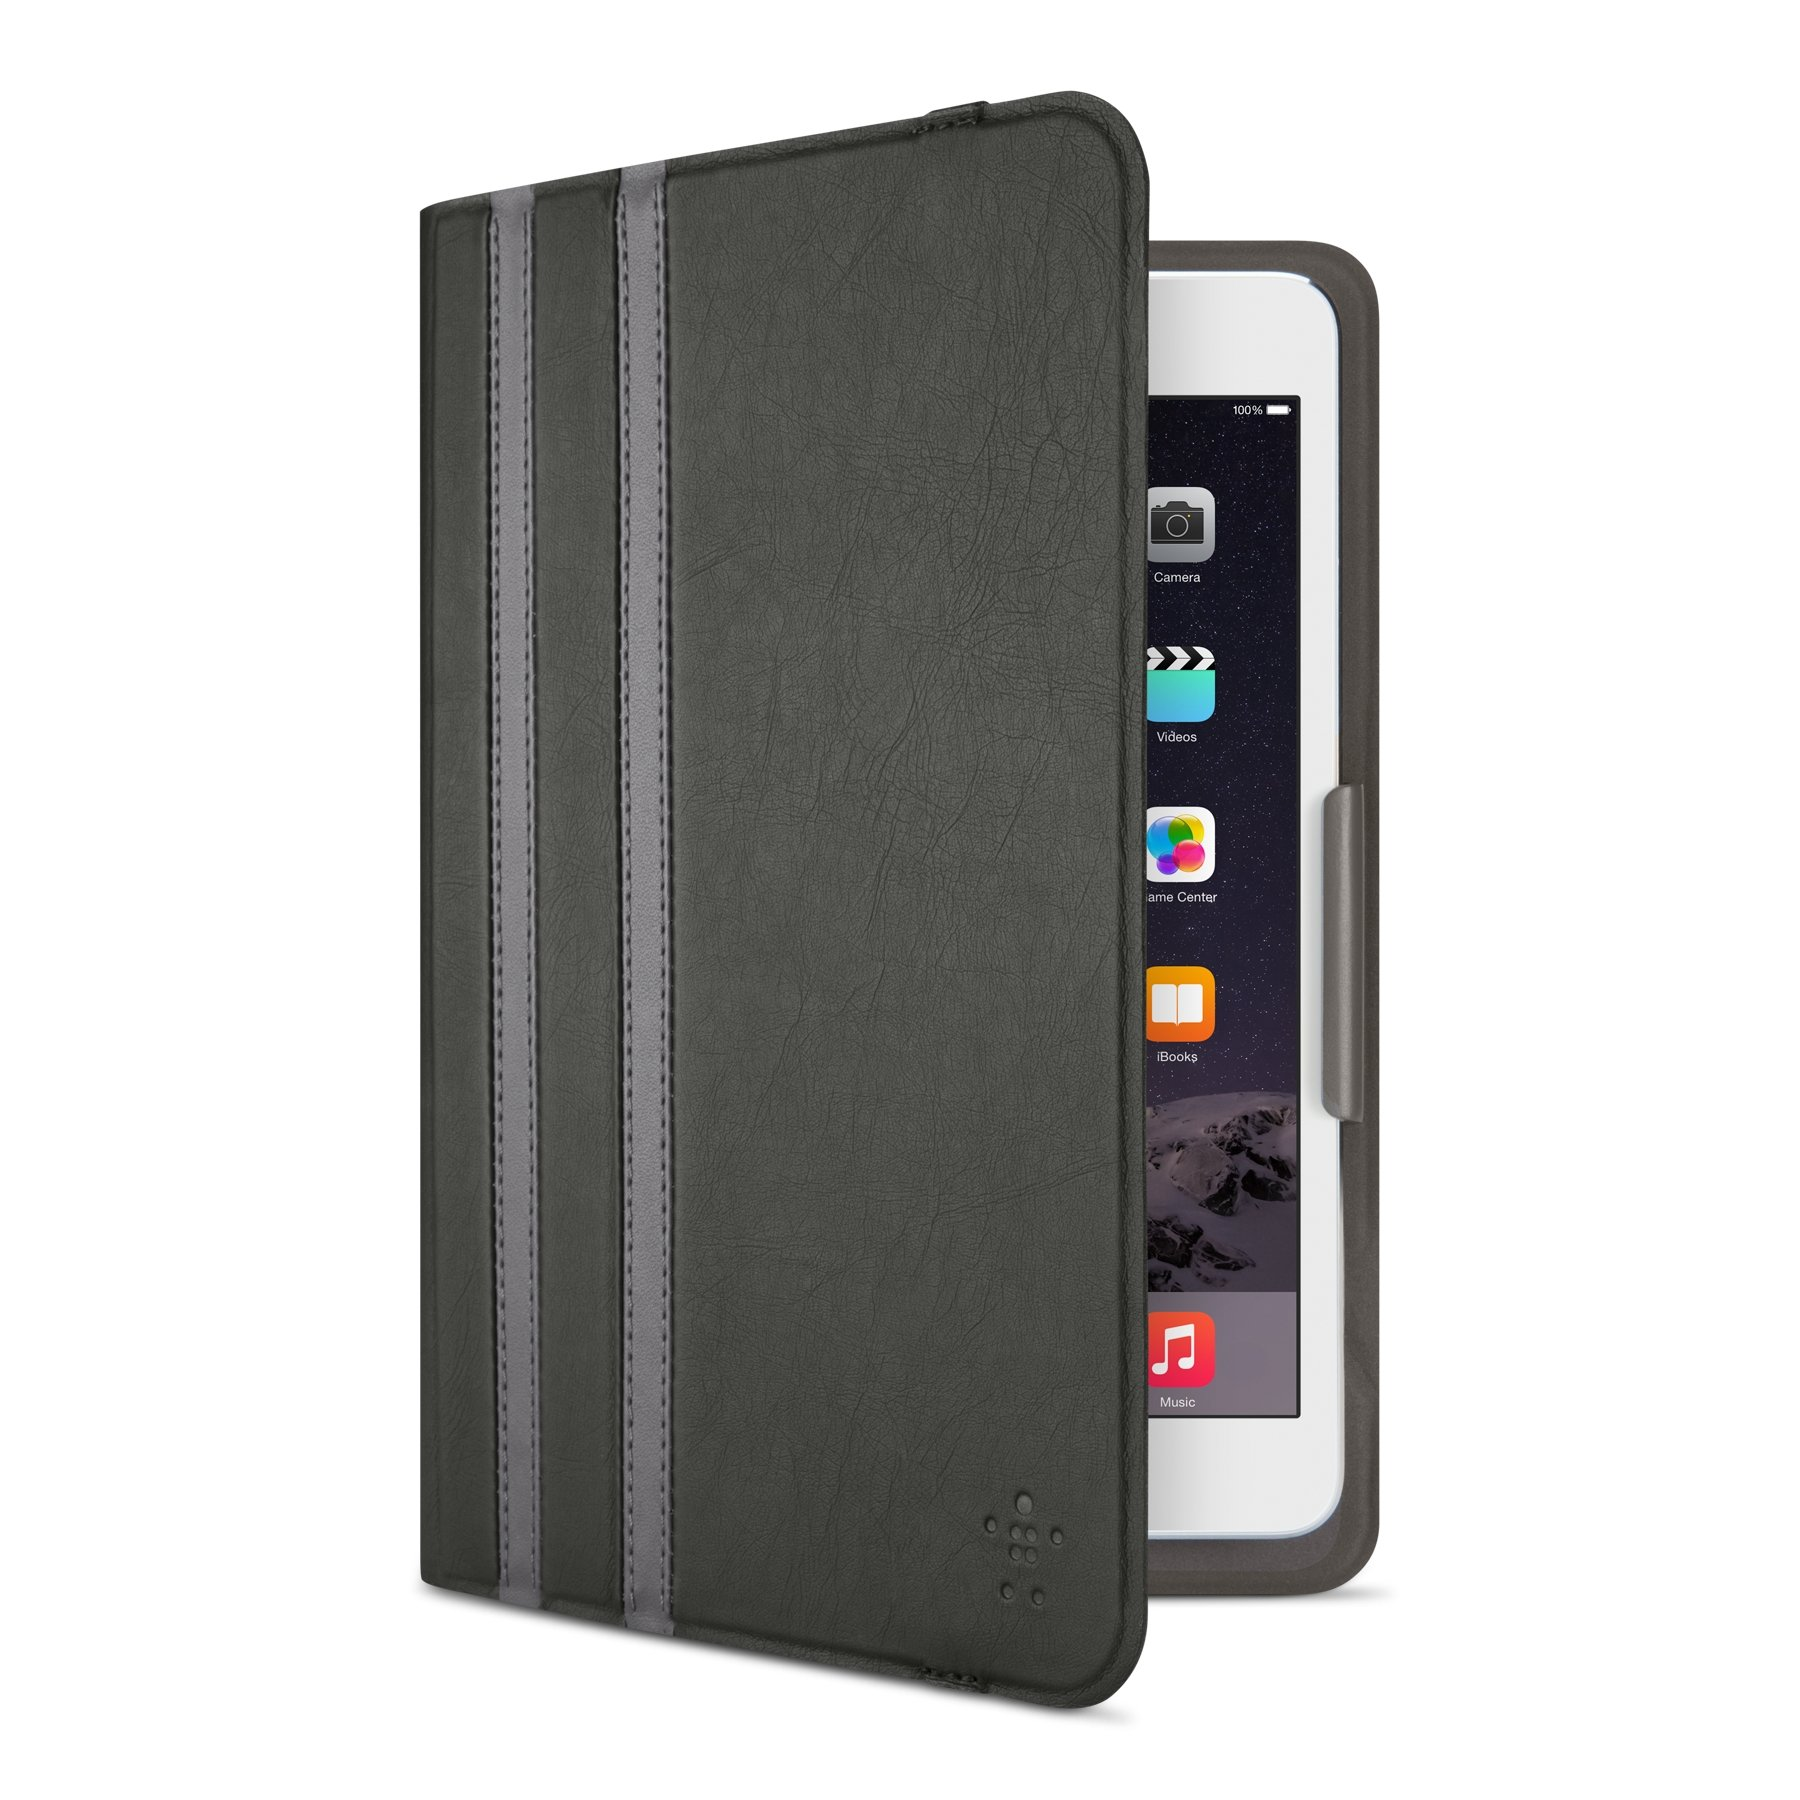 Belkin F7N324BTC00 iPad Mini Case